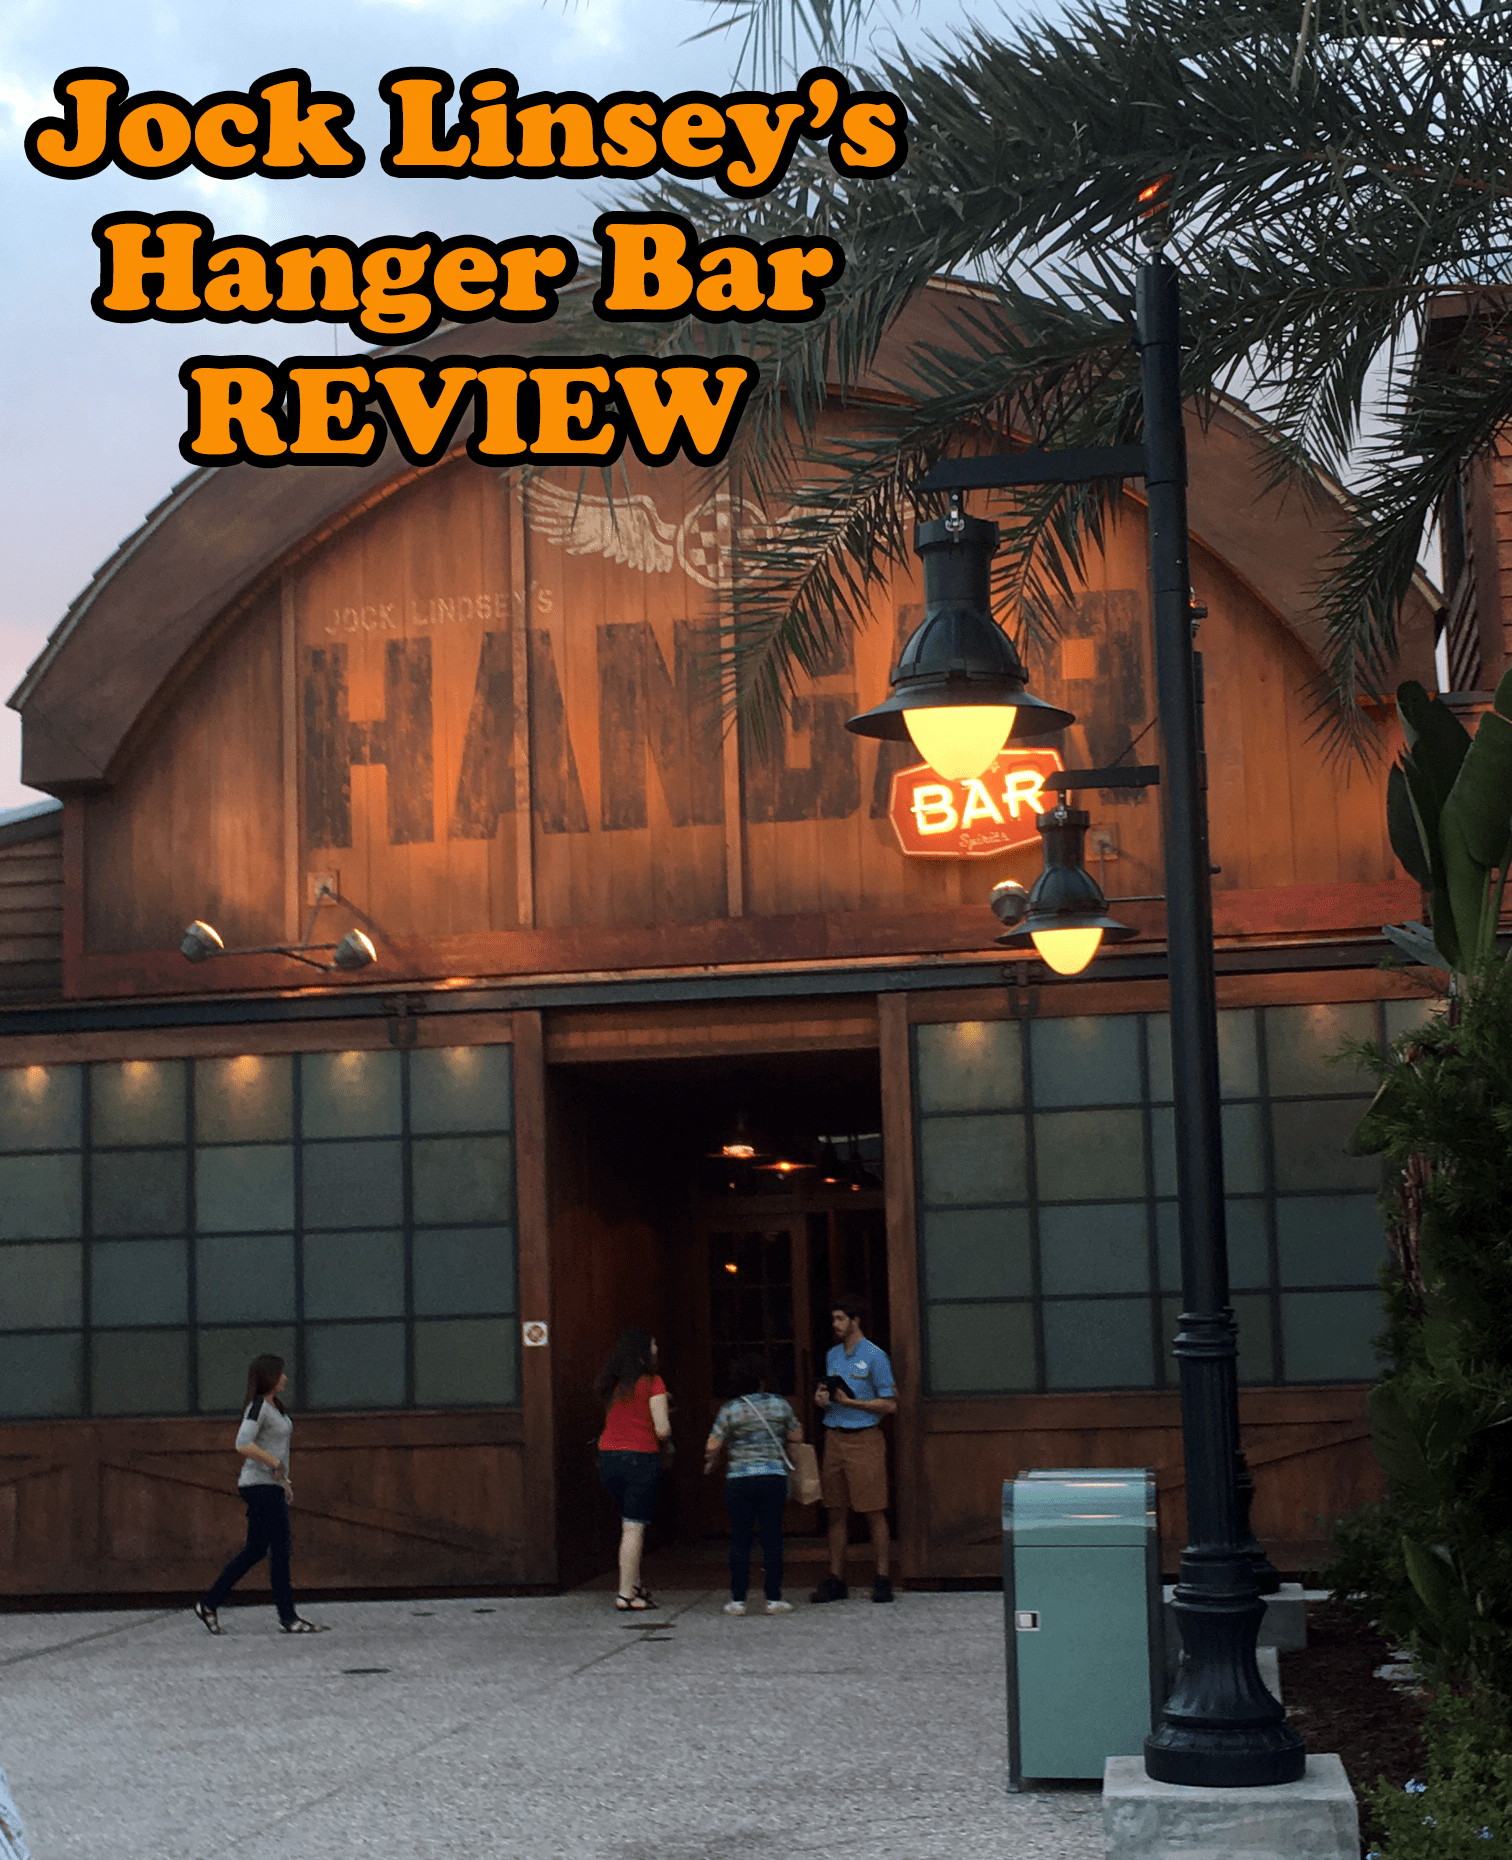 Jock Linsey's Hanger opened in Disney Springs to search for the fountain of youth. #disneysprings #jocklindsey #indianajones